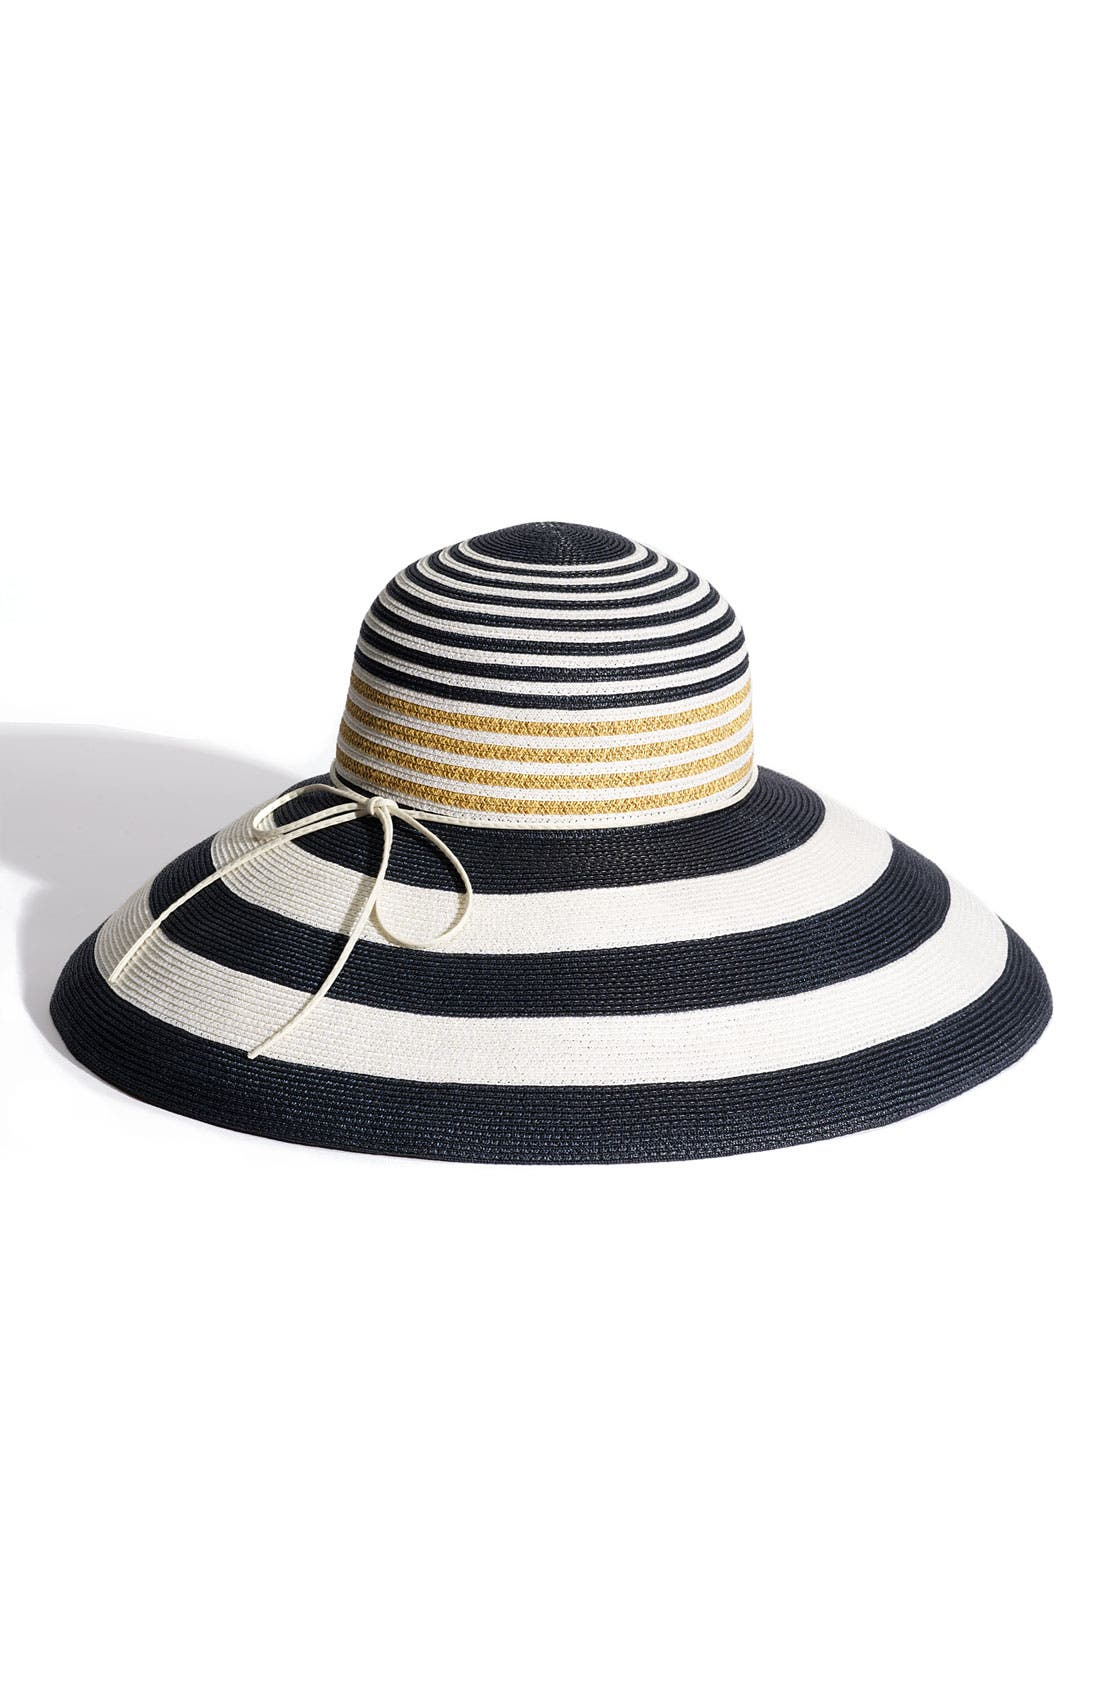 Alternate Image 1 Selected - Laundry by Shelli Segal 'Nicole' Sun Hat